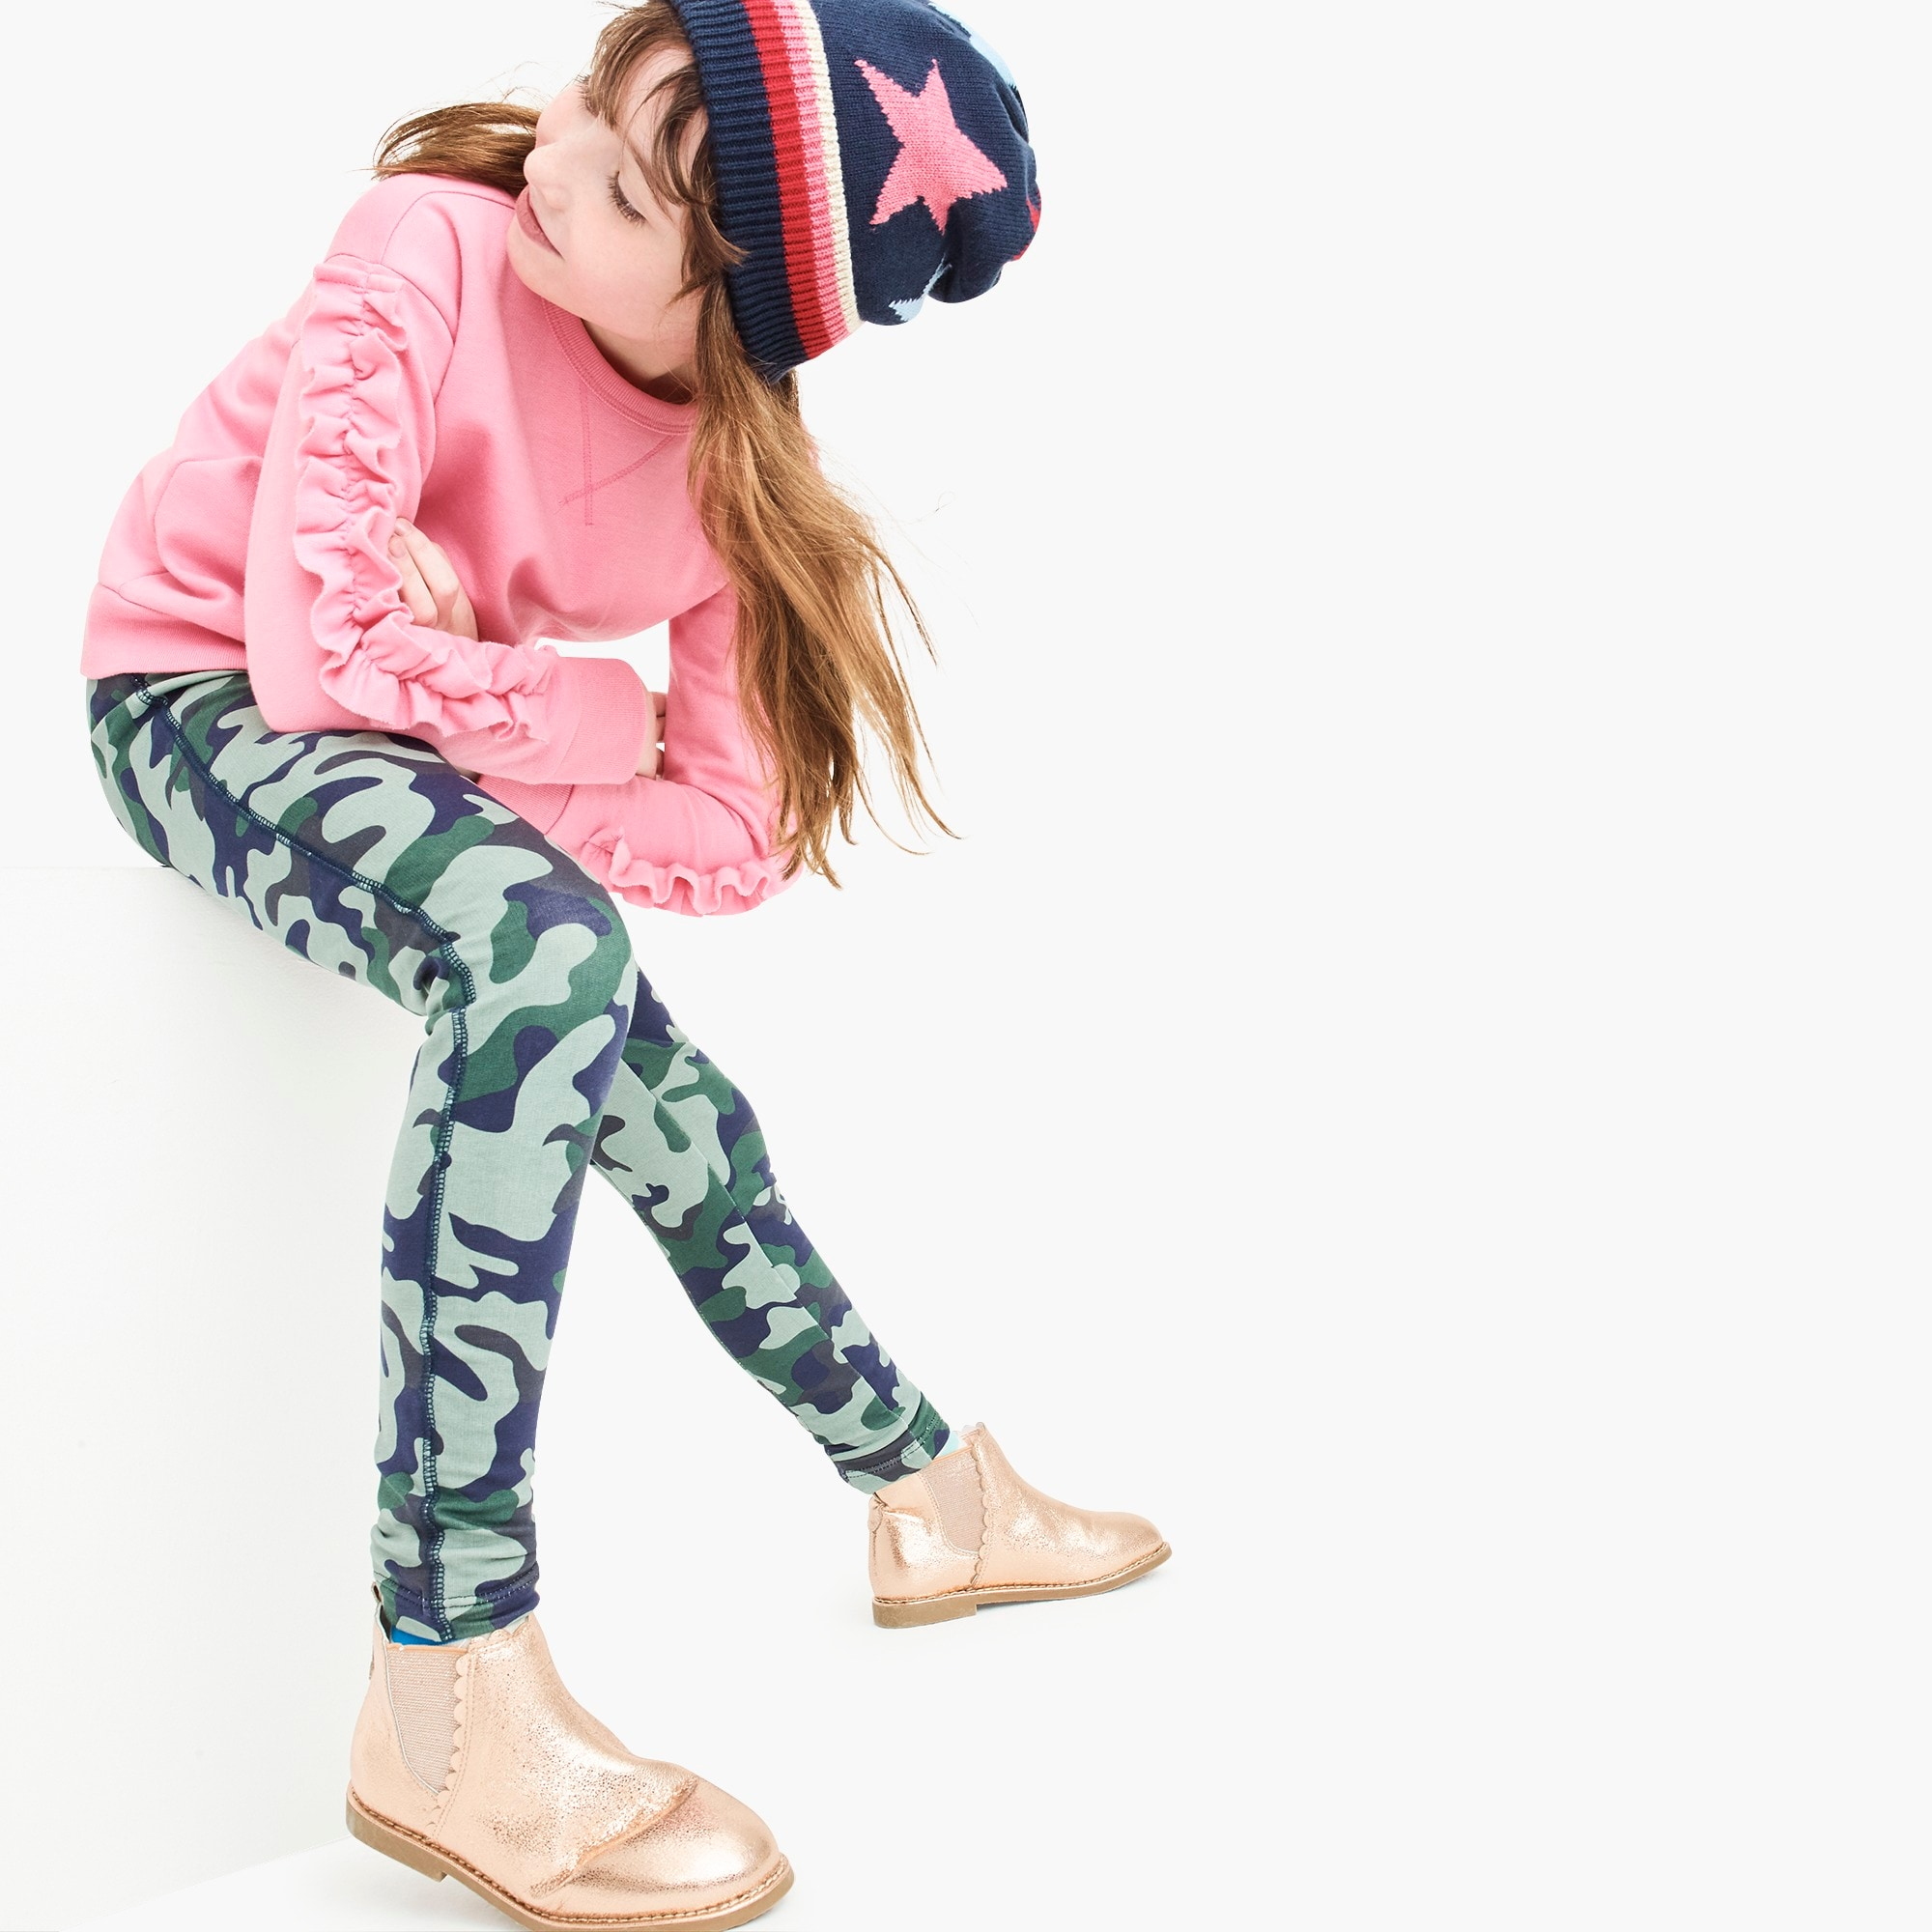 Image 1 for Girls' cozy everyday leggings in camo